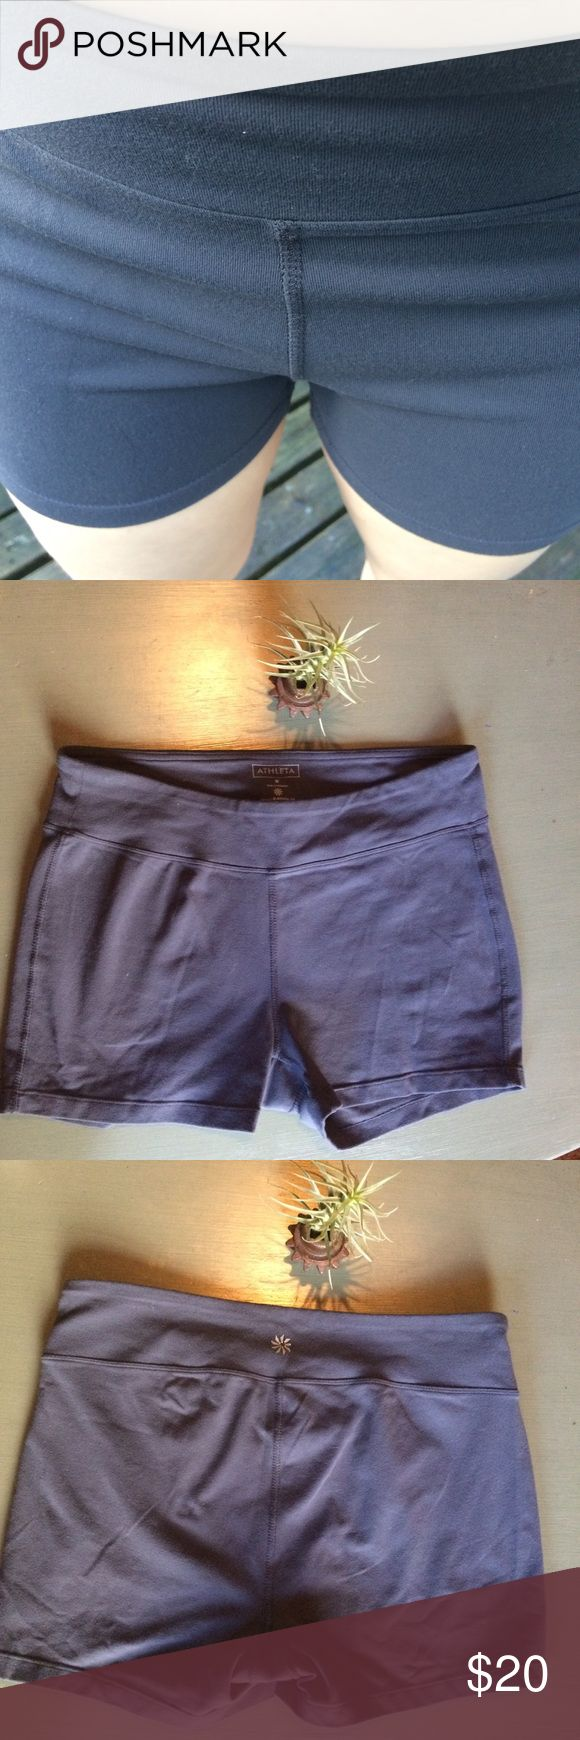 Athleta gray athletic shorts Athleta gray athletic shorts that fit snugly and will move with your body as you move. Has inner lining at crotch area. Would be great for a hot yoga class! Athleta symbol on back shows slight wear (Shown). Measurements: waist:14, length: 10.5 Athleta Shorts